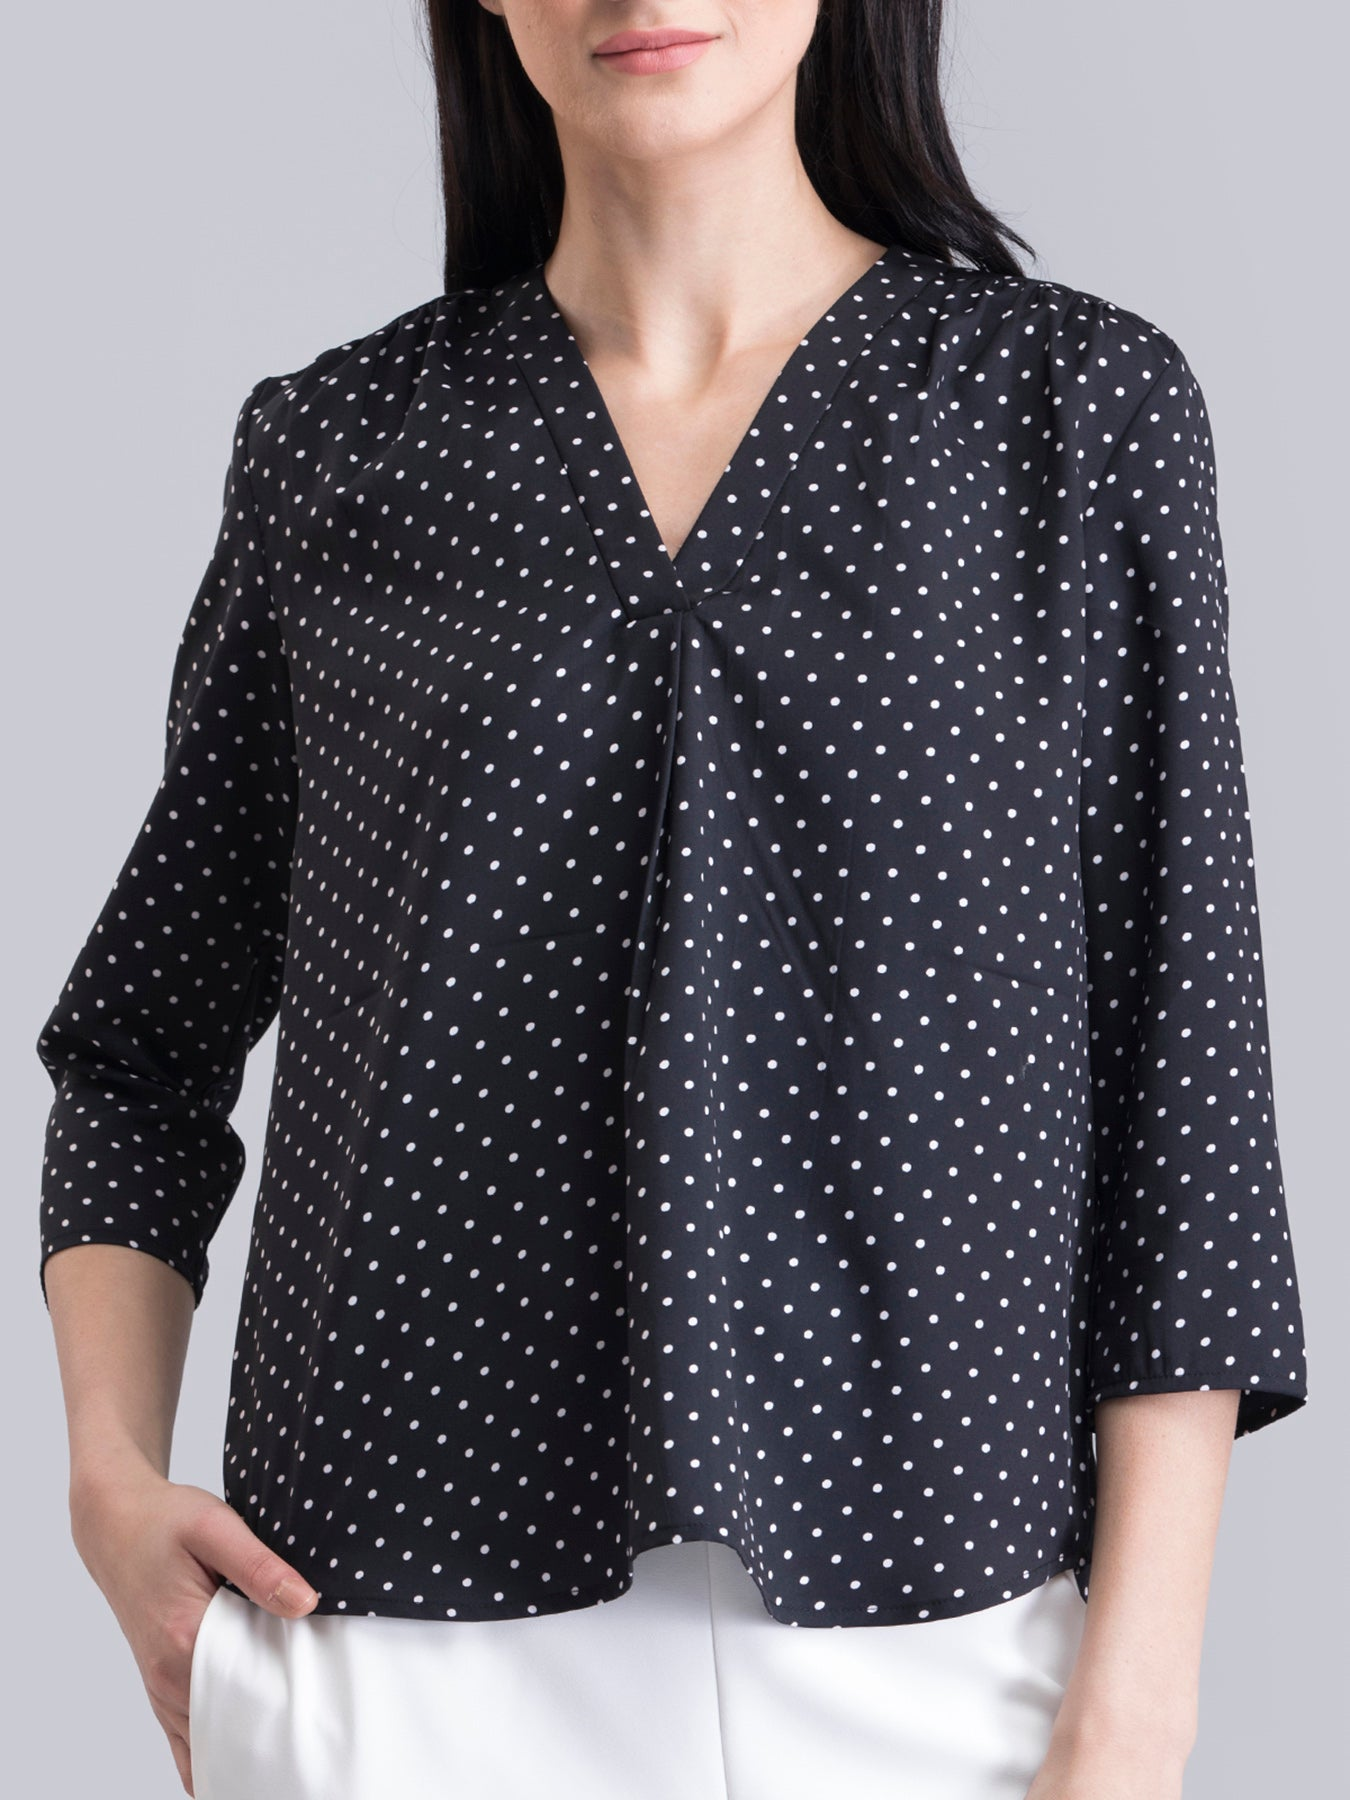 V Neck Polka Dot Top - Black and White